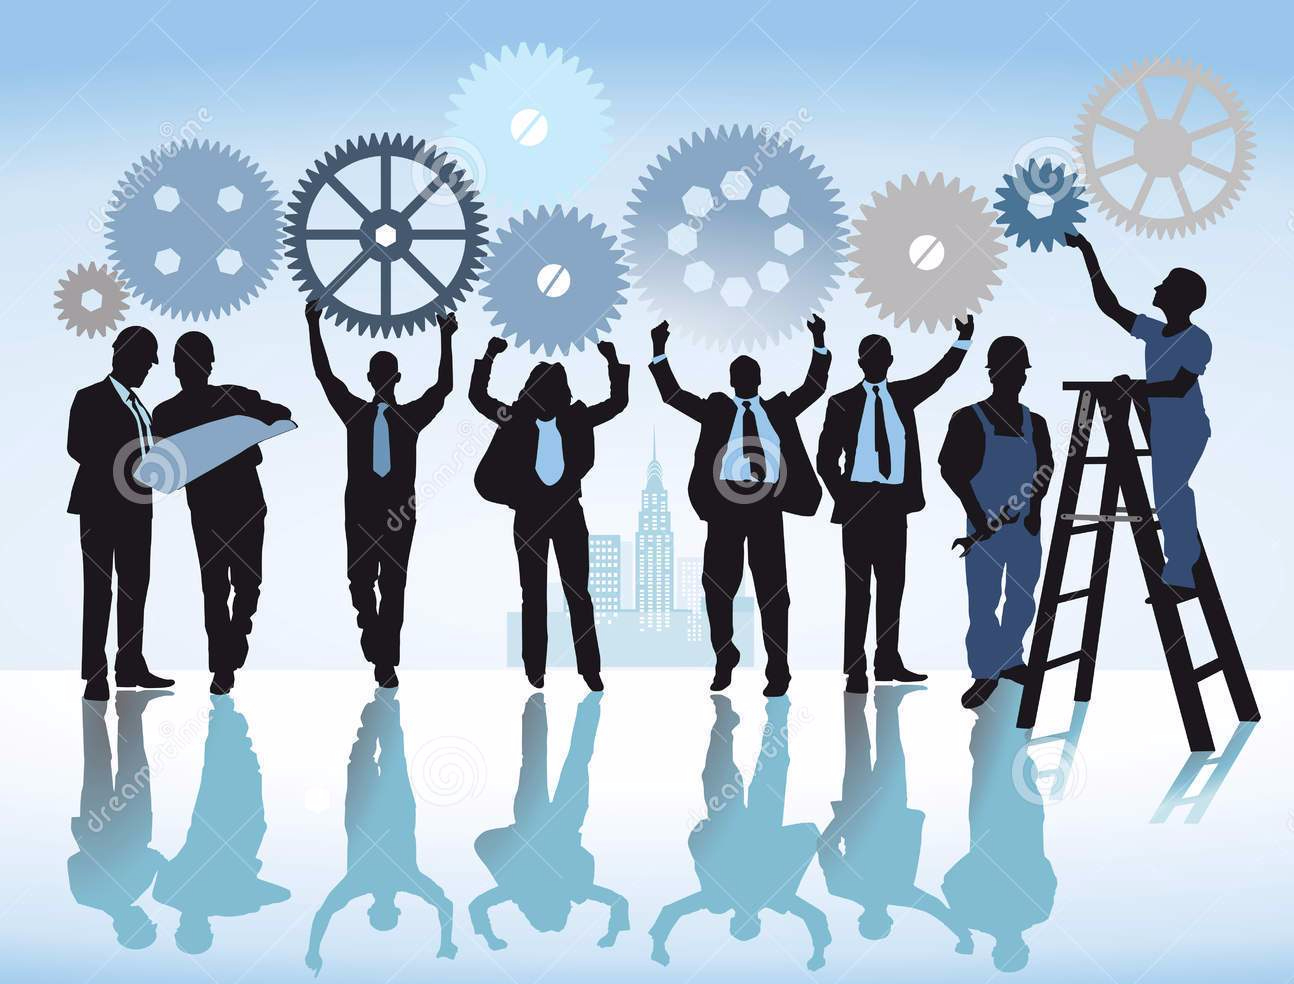 business-cooperation-illustration-silhouetted-team-cooperating-set-interlinking-cog-wheels-33548035.jpg